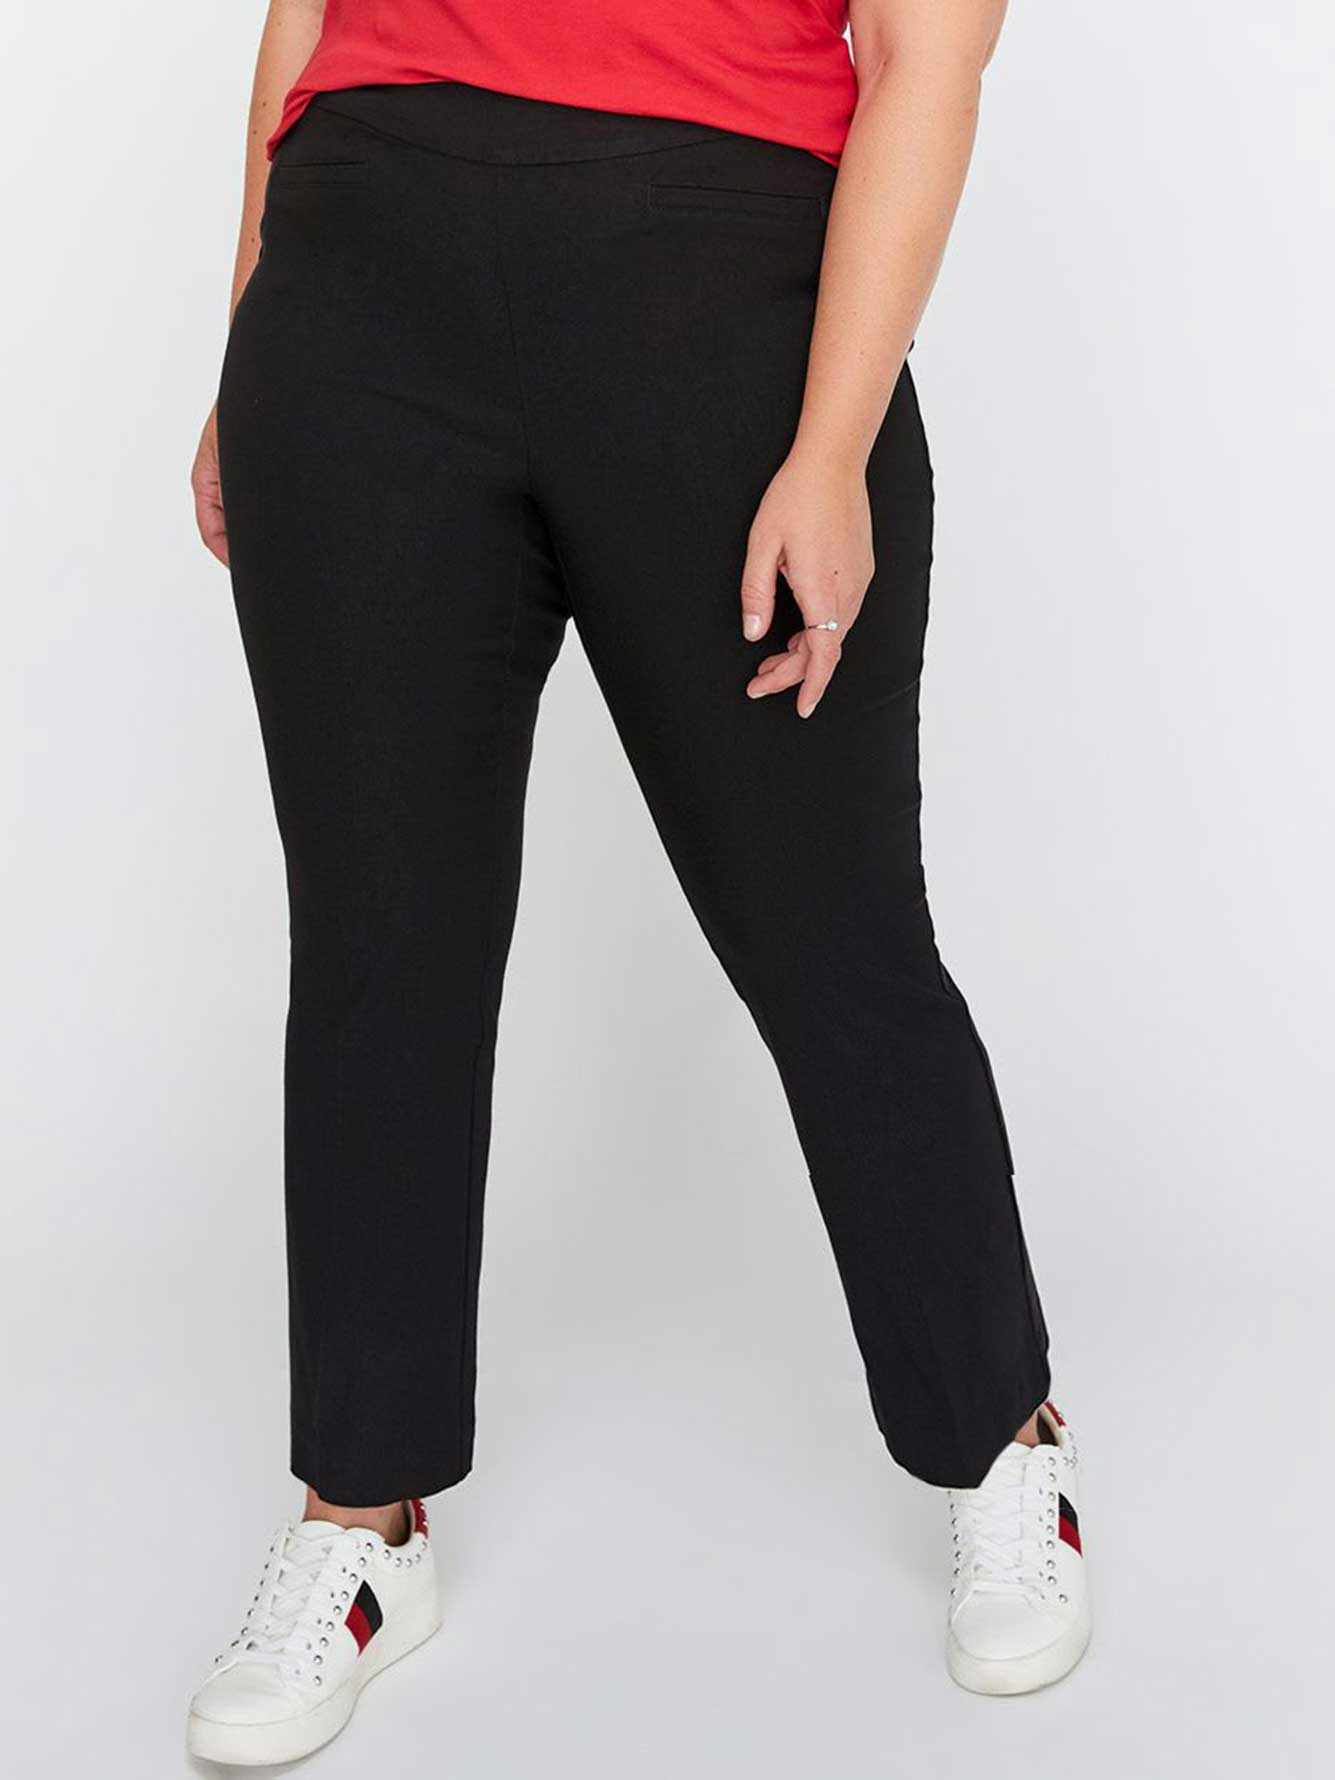 Petite Modern Stretch Kick Flare Pant - Michel Studio